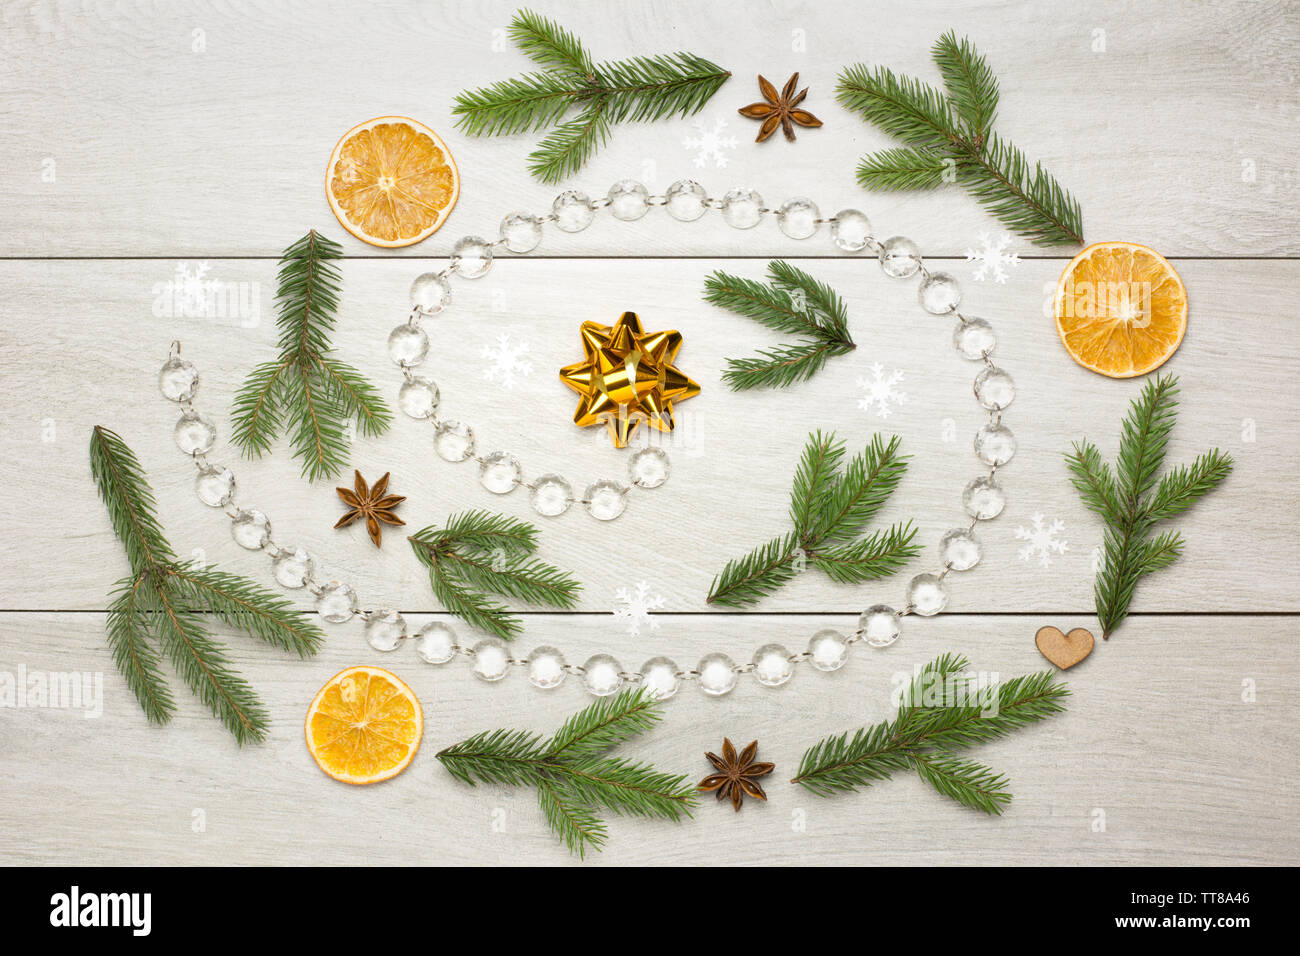 Christmas spiral decoration with dried oranges, aniseed stars, fir tree branches and glass bead chain on white wooden background - Stock Image